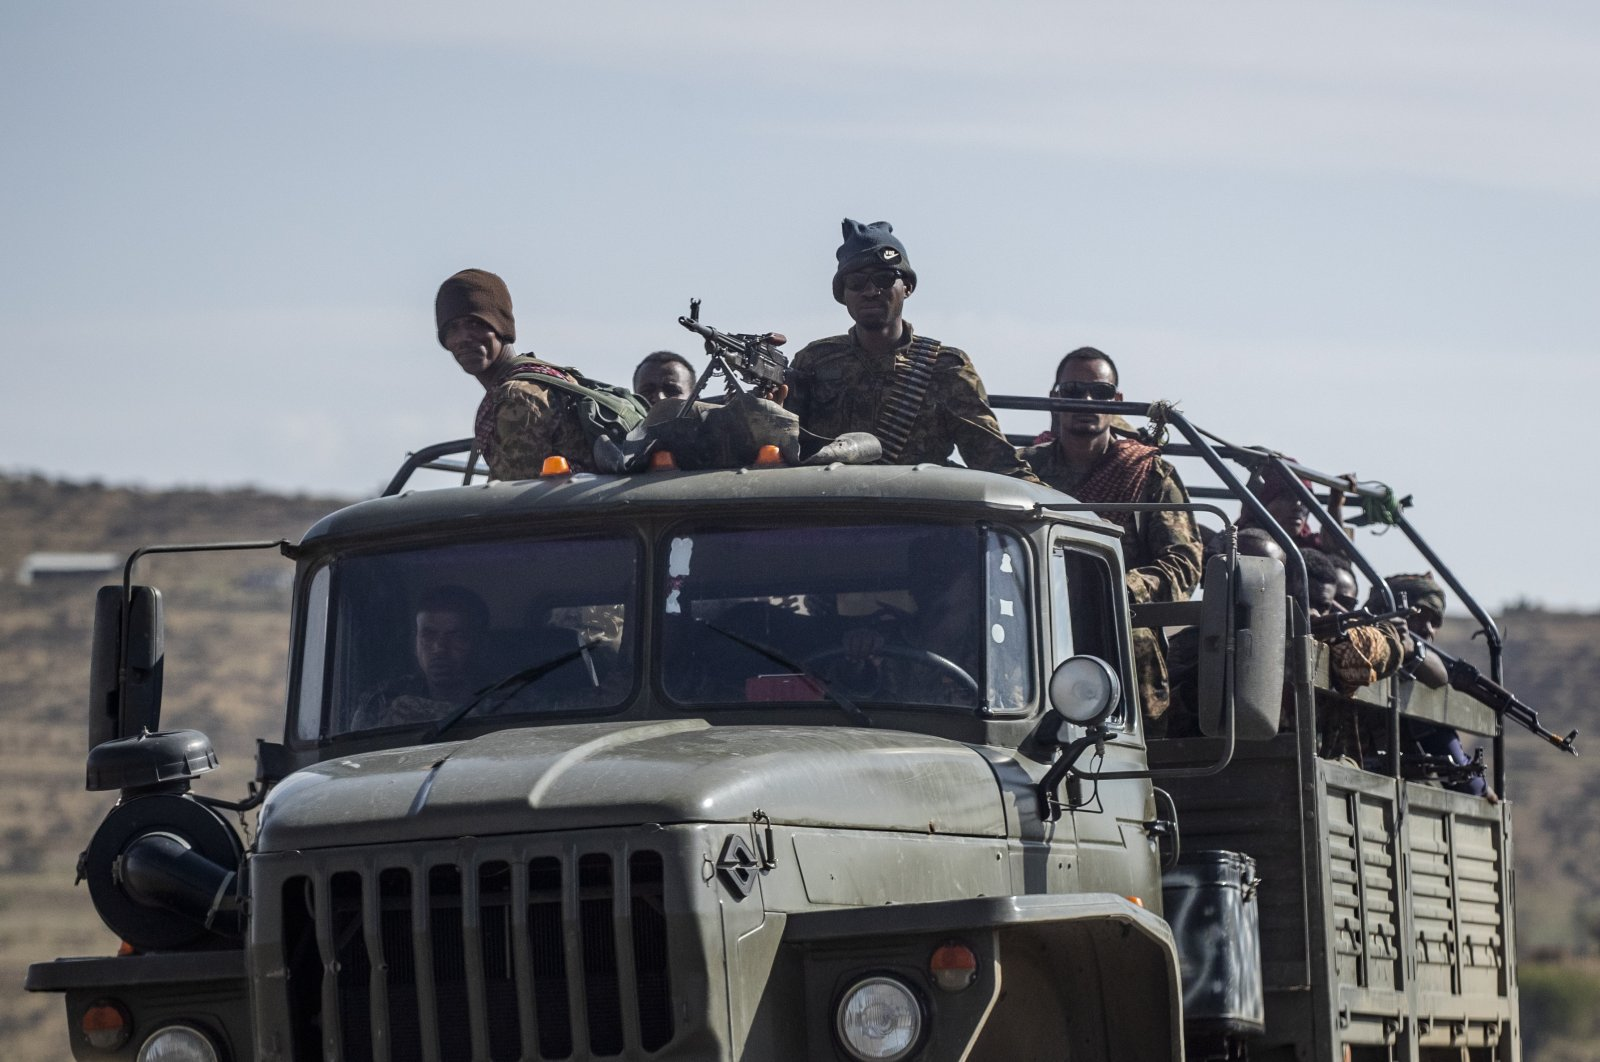 Ethiopian government soldiers ride in the back of a truck on a road near Agula, north of Mekele, in the Tigray region of northern Ethiopia on May 8, 2021. (AP Photo)